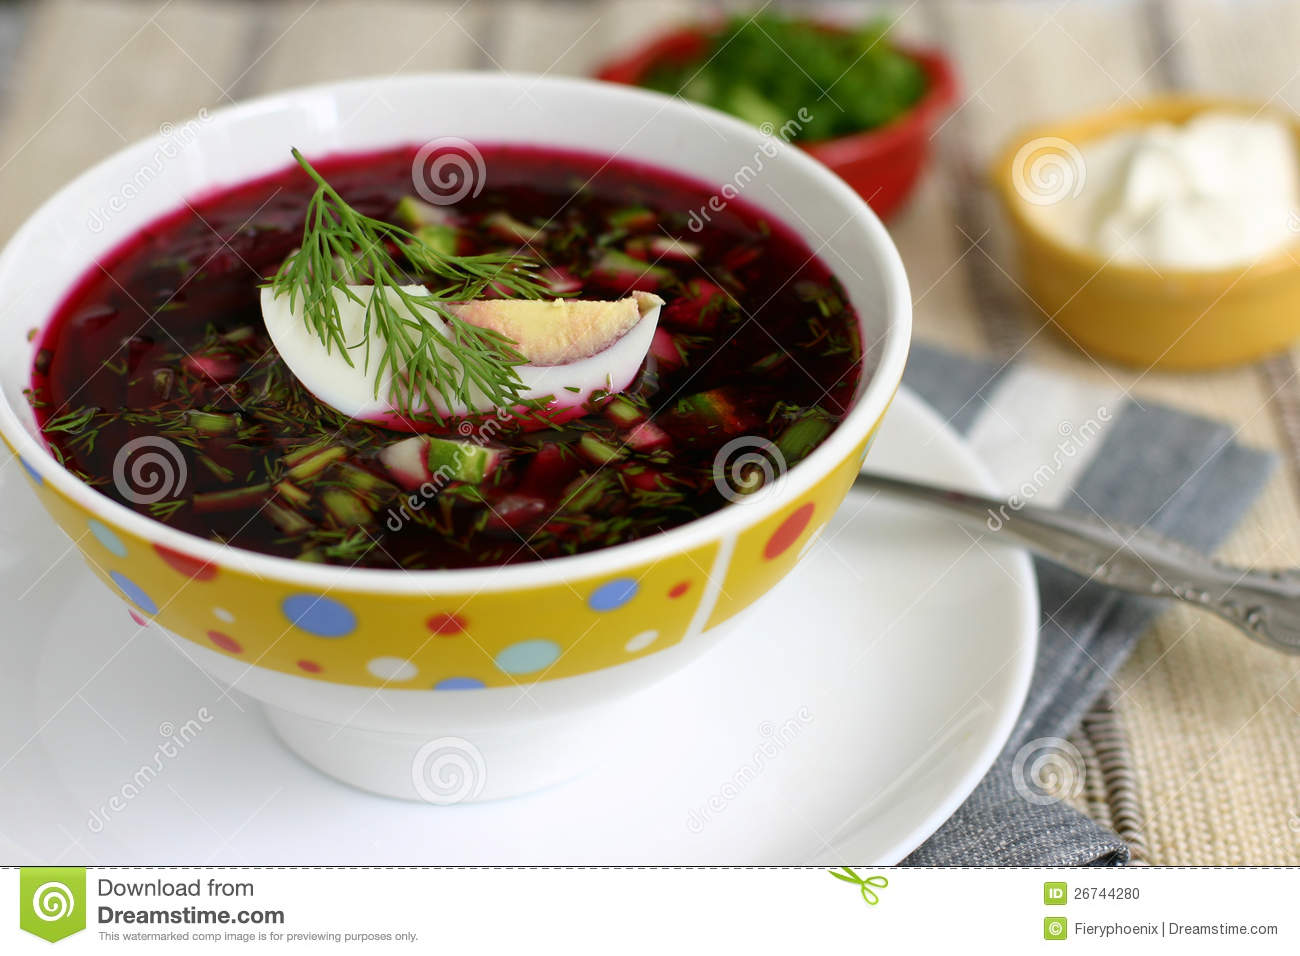 Beet soup with egg, cucumber and dill.